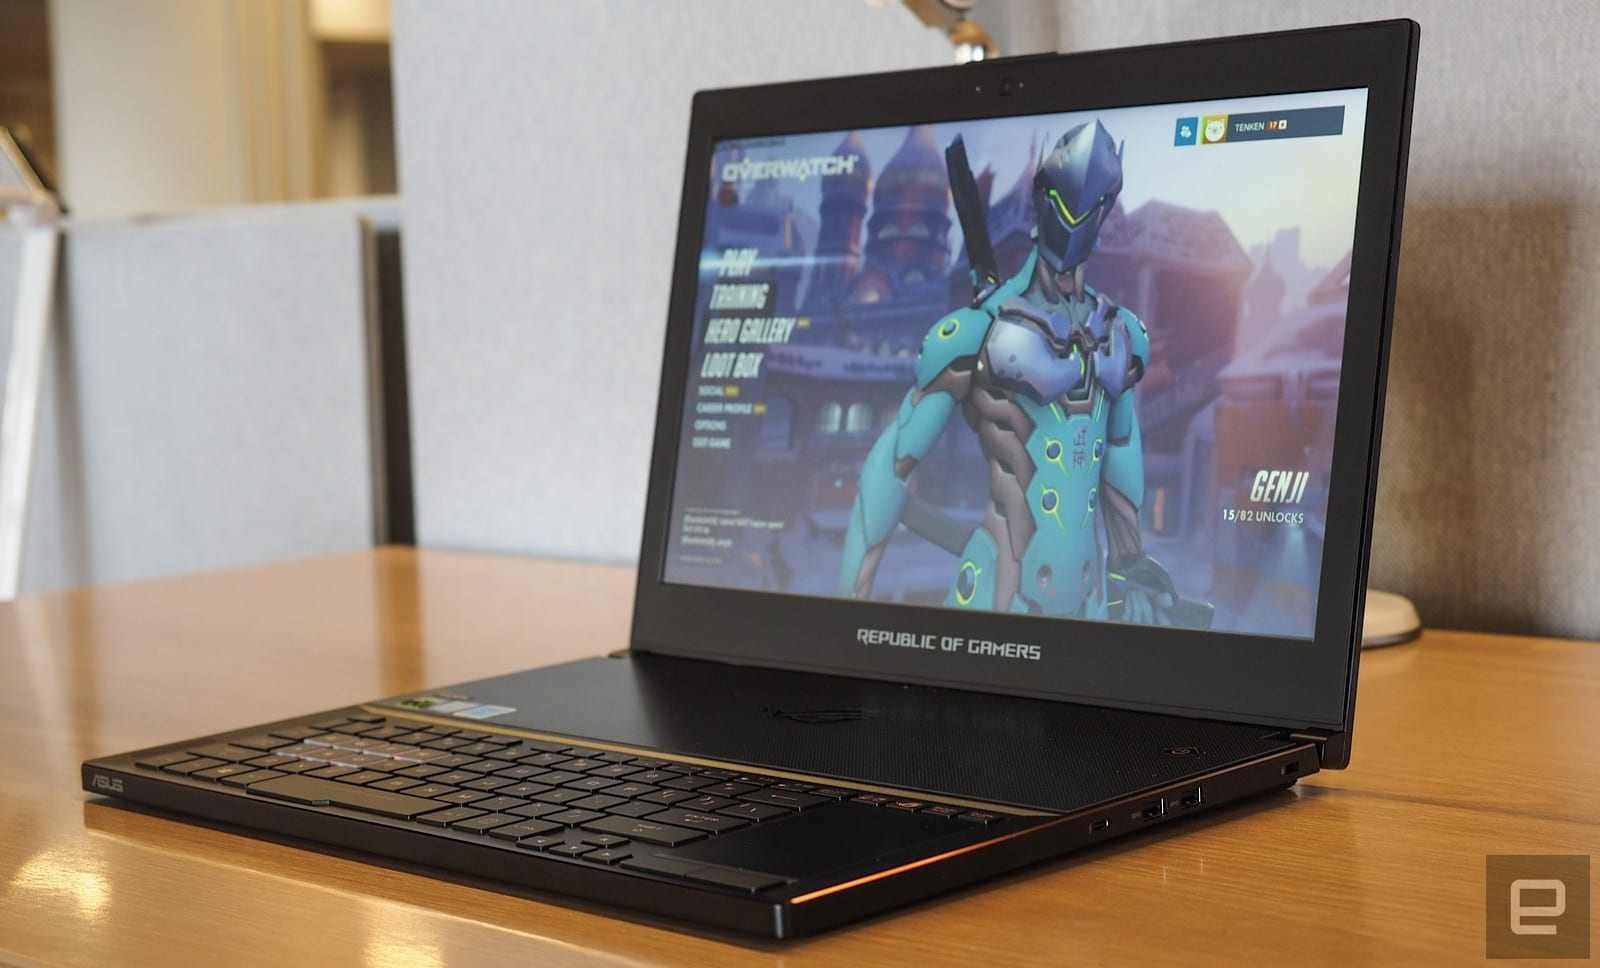 ASUS ROG Zephyrus review: Gaming laptops will never be the